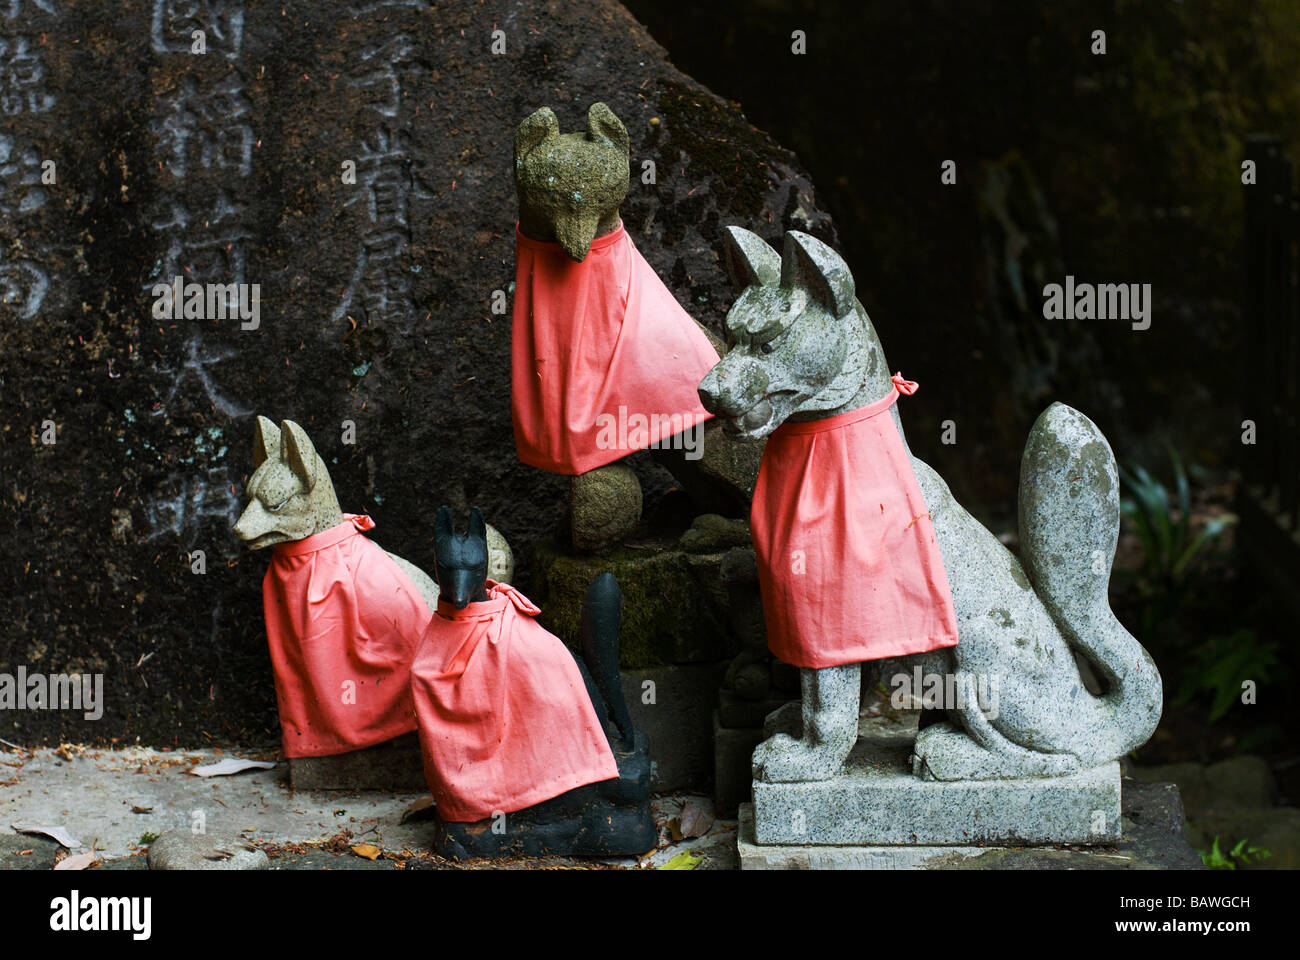 Inari fox statues in red bibs at the small Shinto Inari